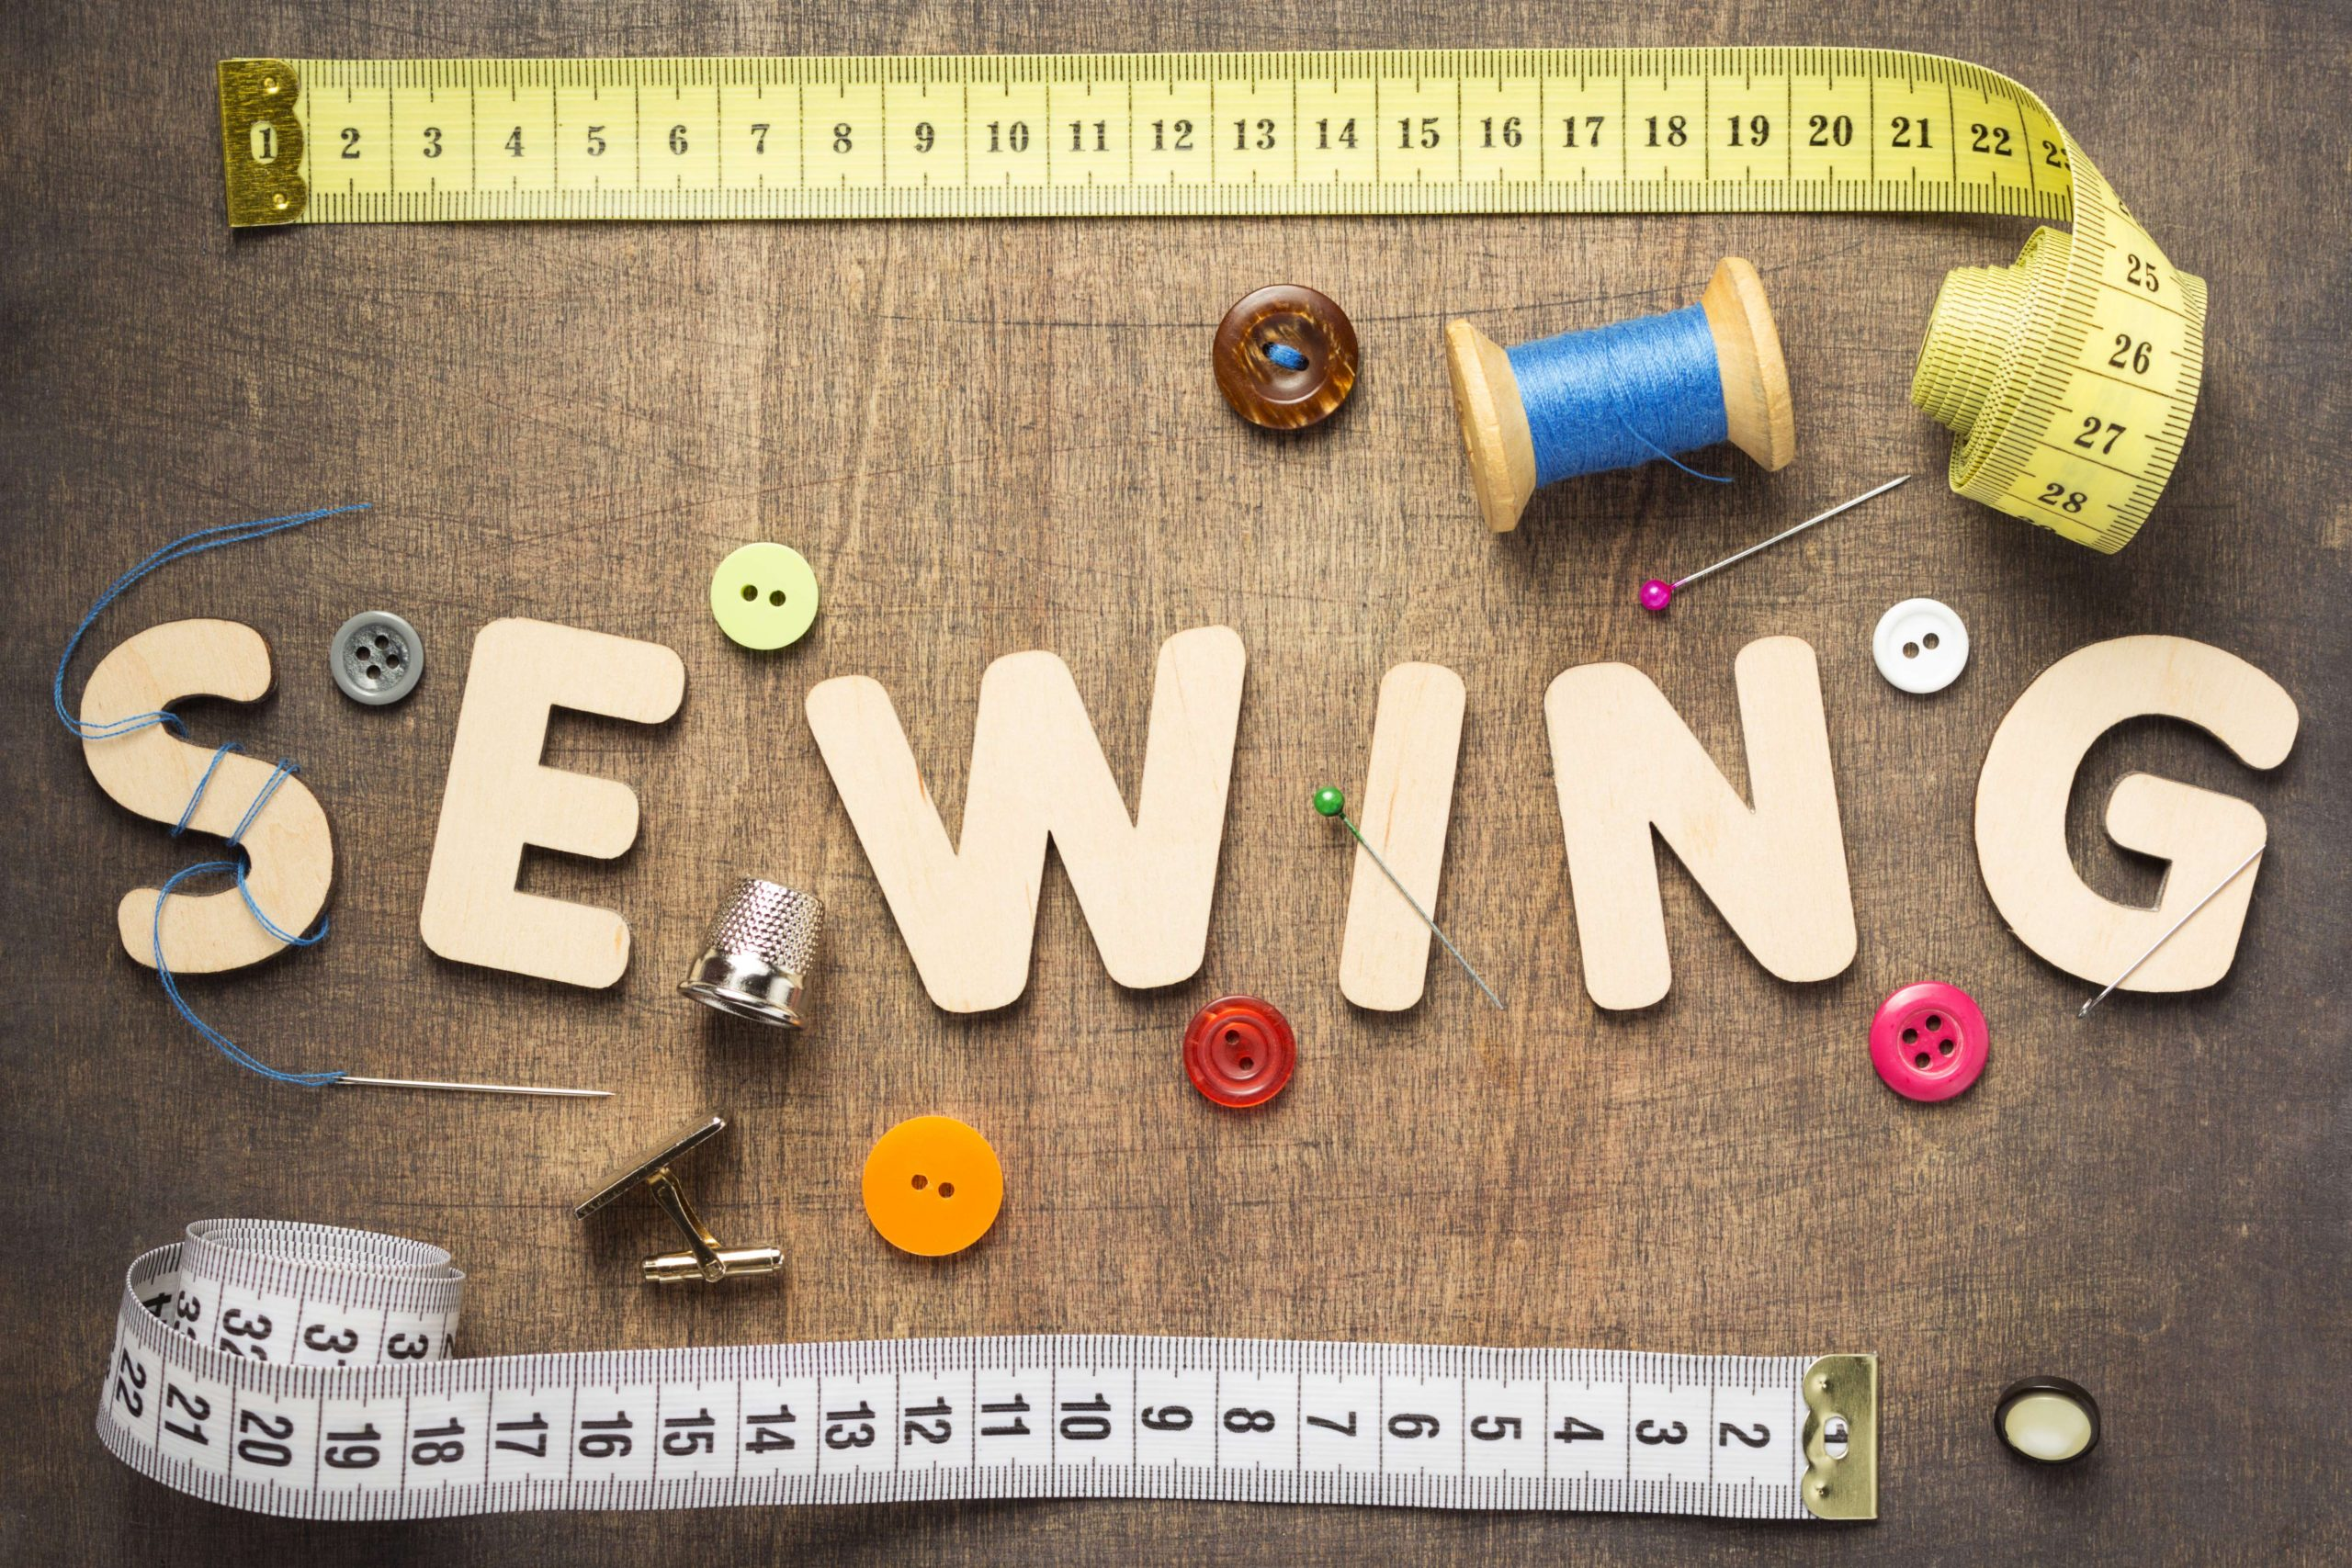 Image of needle, thread, measuring tape, and buttons